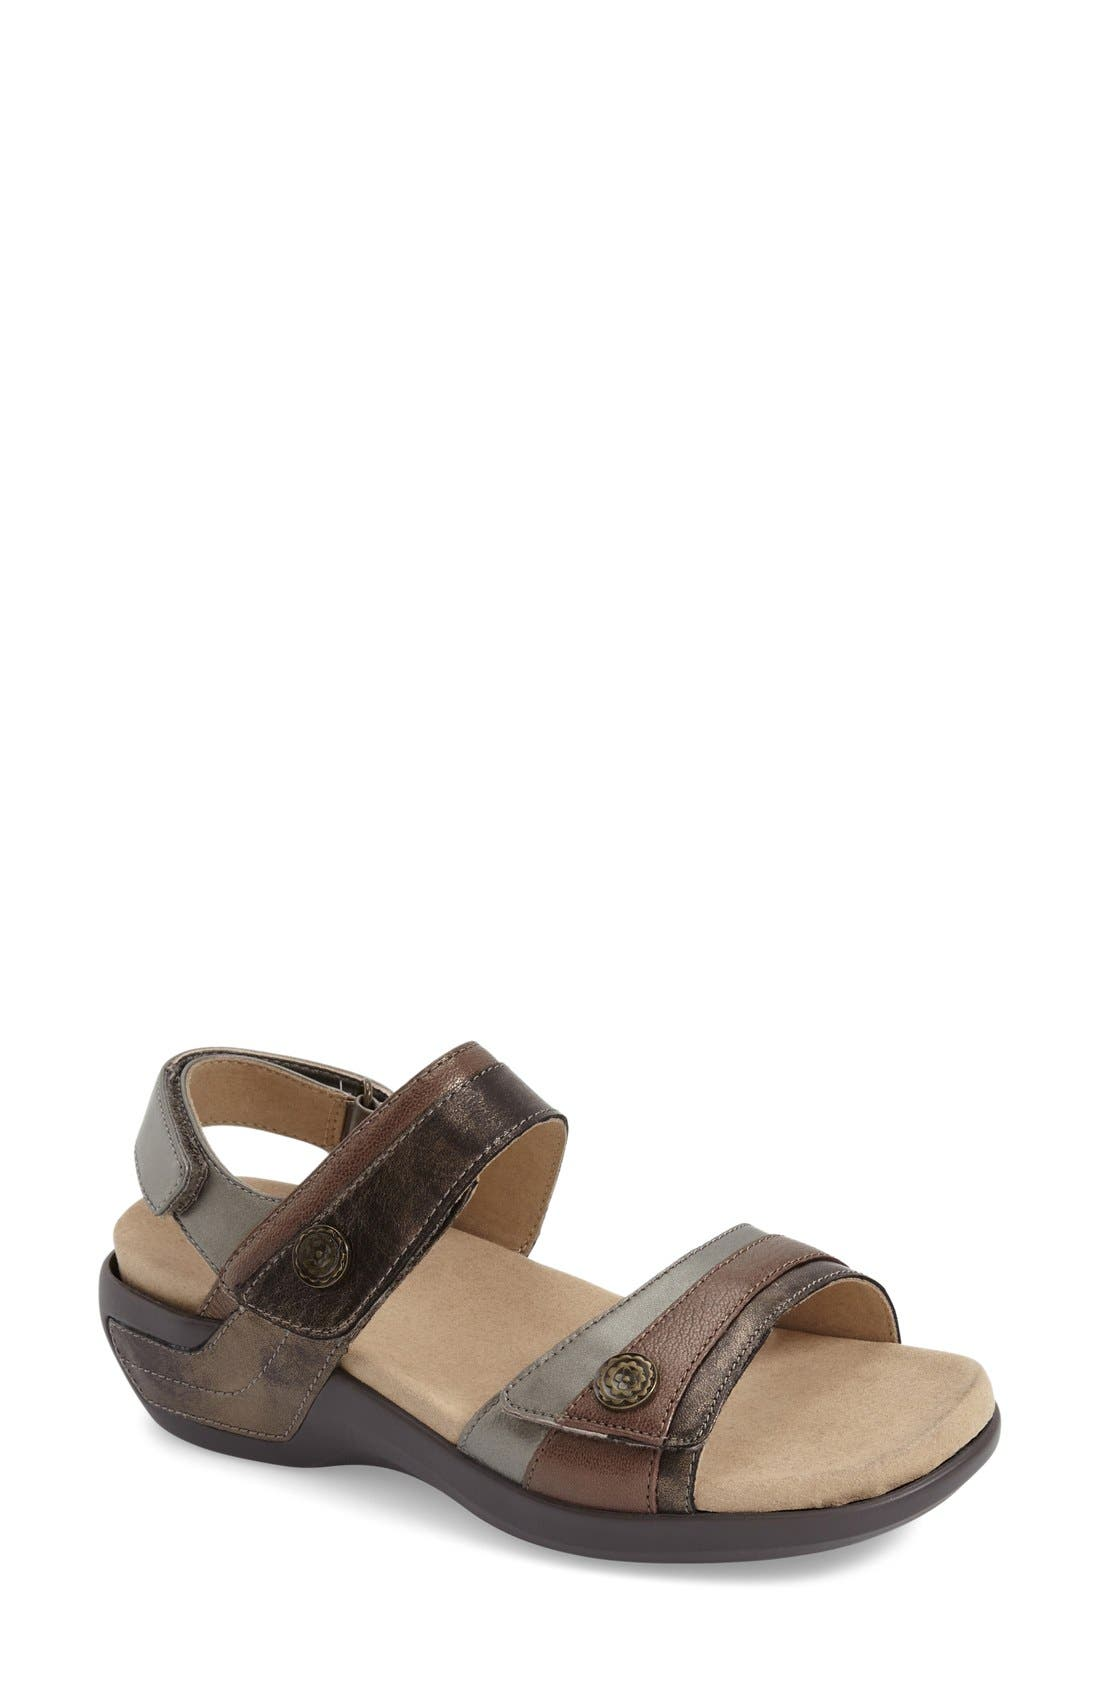 ARAVON 'Katherine' Sandal, Main, color, GREY LEATHER